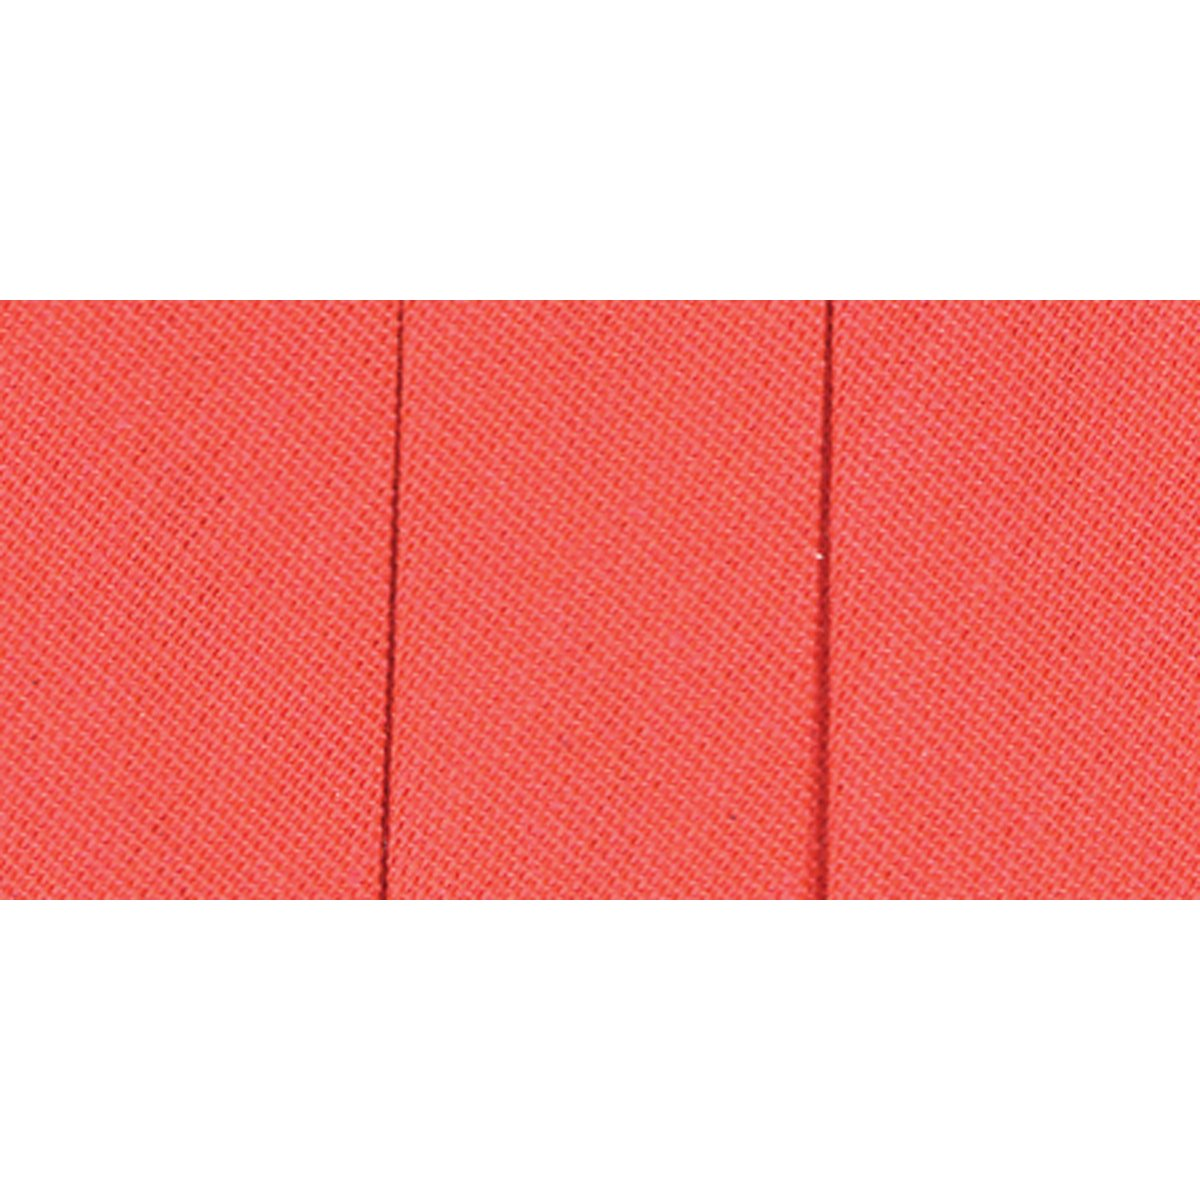 Wrights 117-206-025 Extra Wide Double Fold Bias Tape, Neon Red, 3-Yard by Wright Products